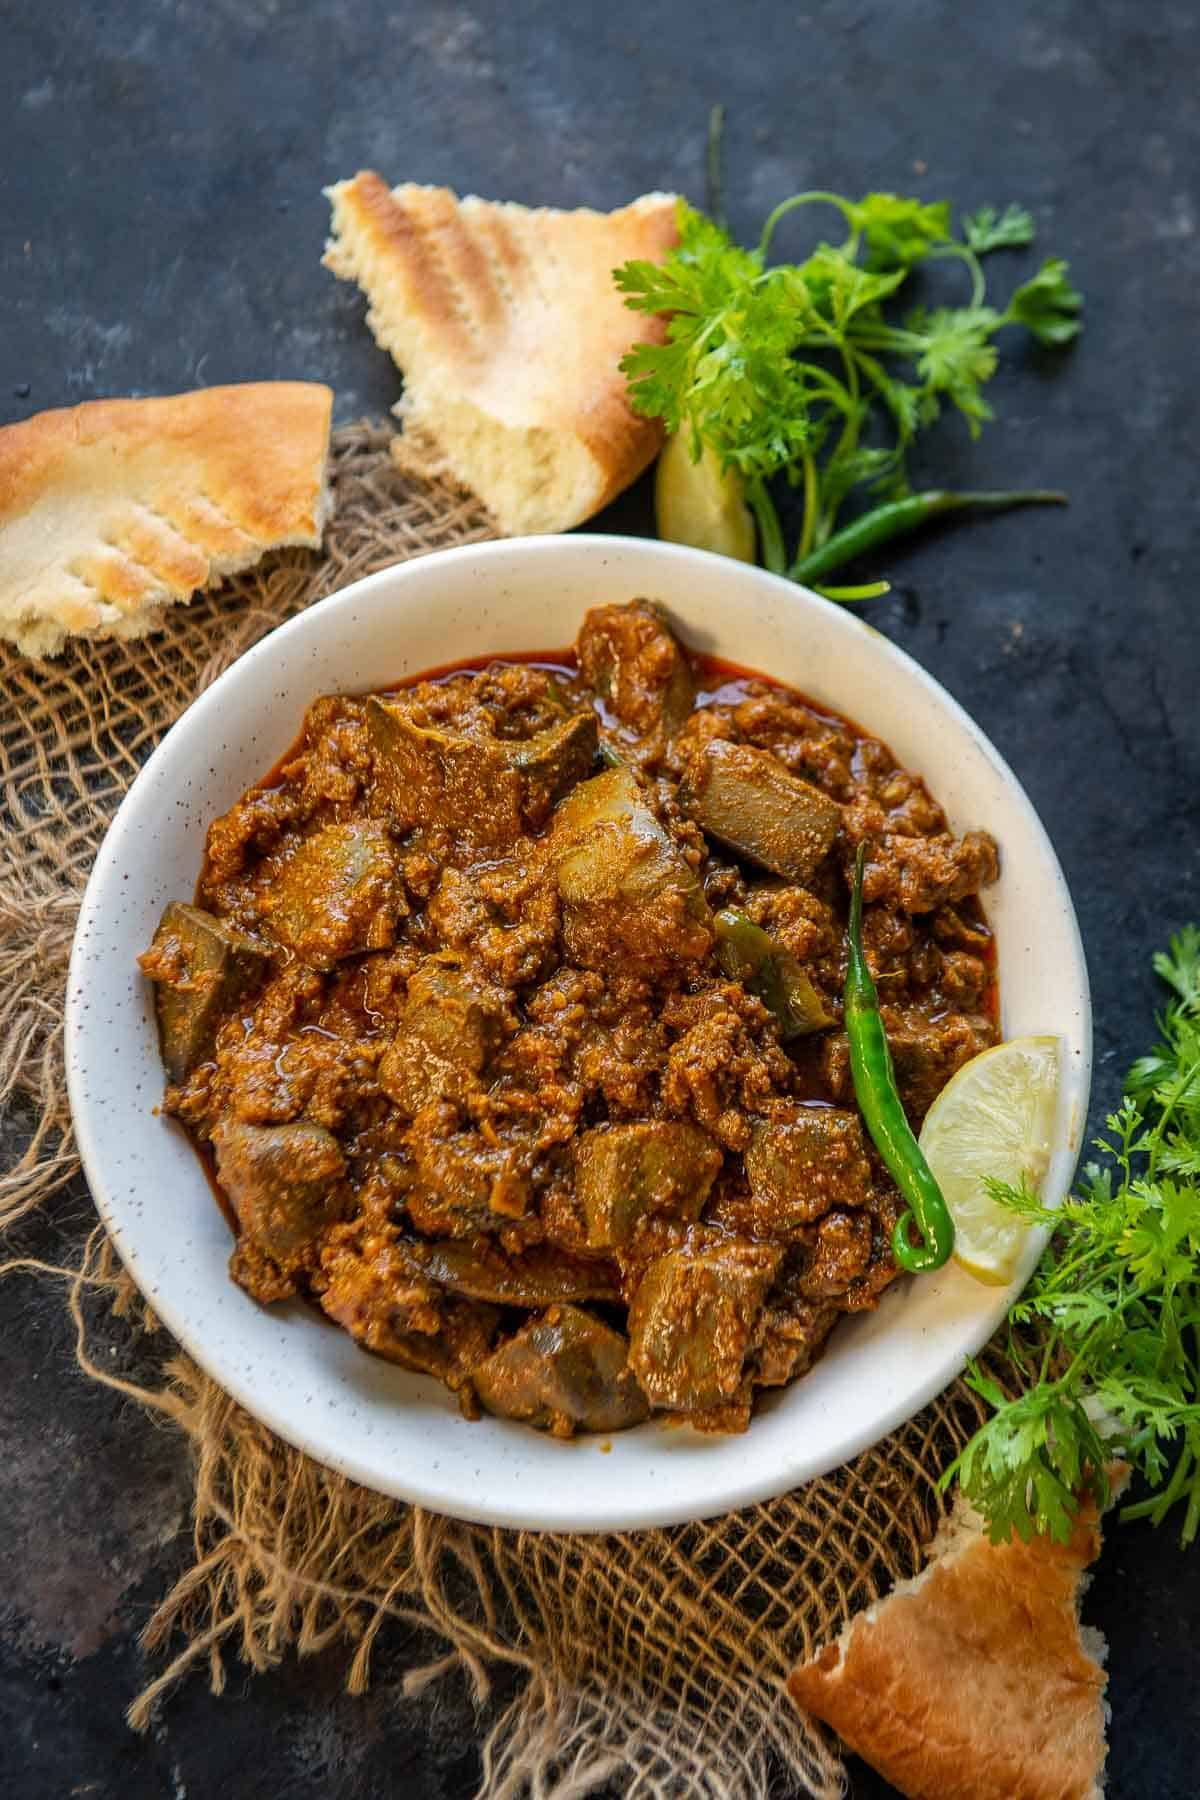 Keema Kaleji served in a bowl.